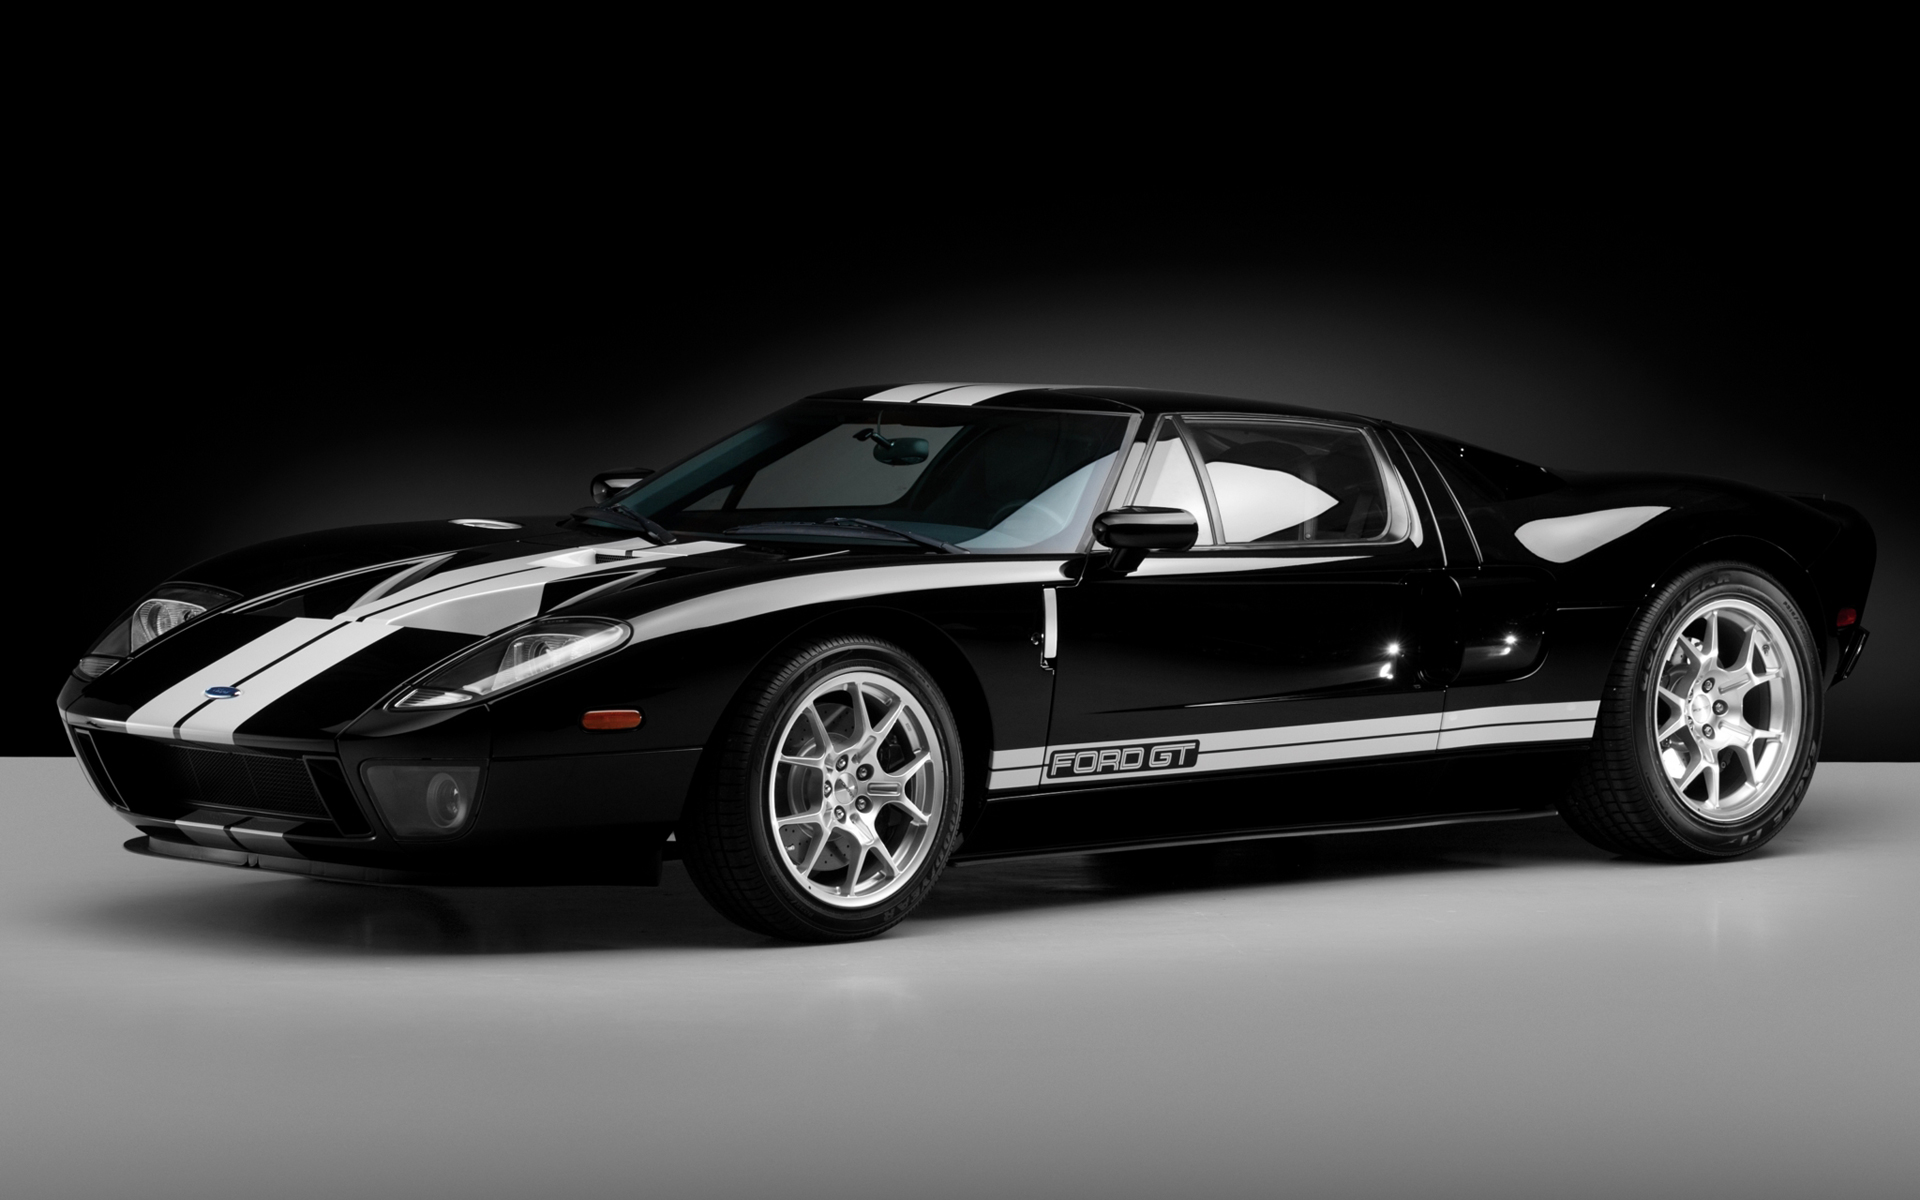 Black Ford Gt HD Wallpapers   High Definition Wallpapers 1920x1200